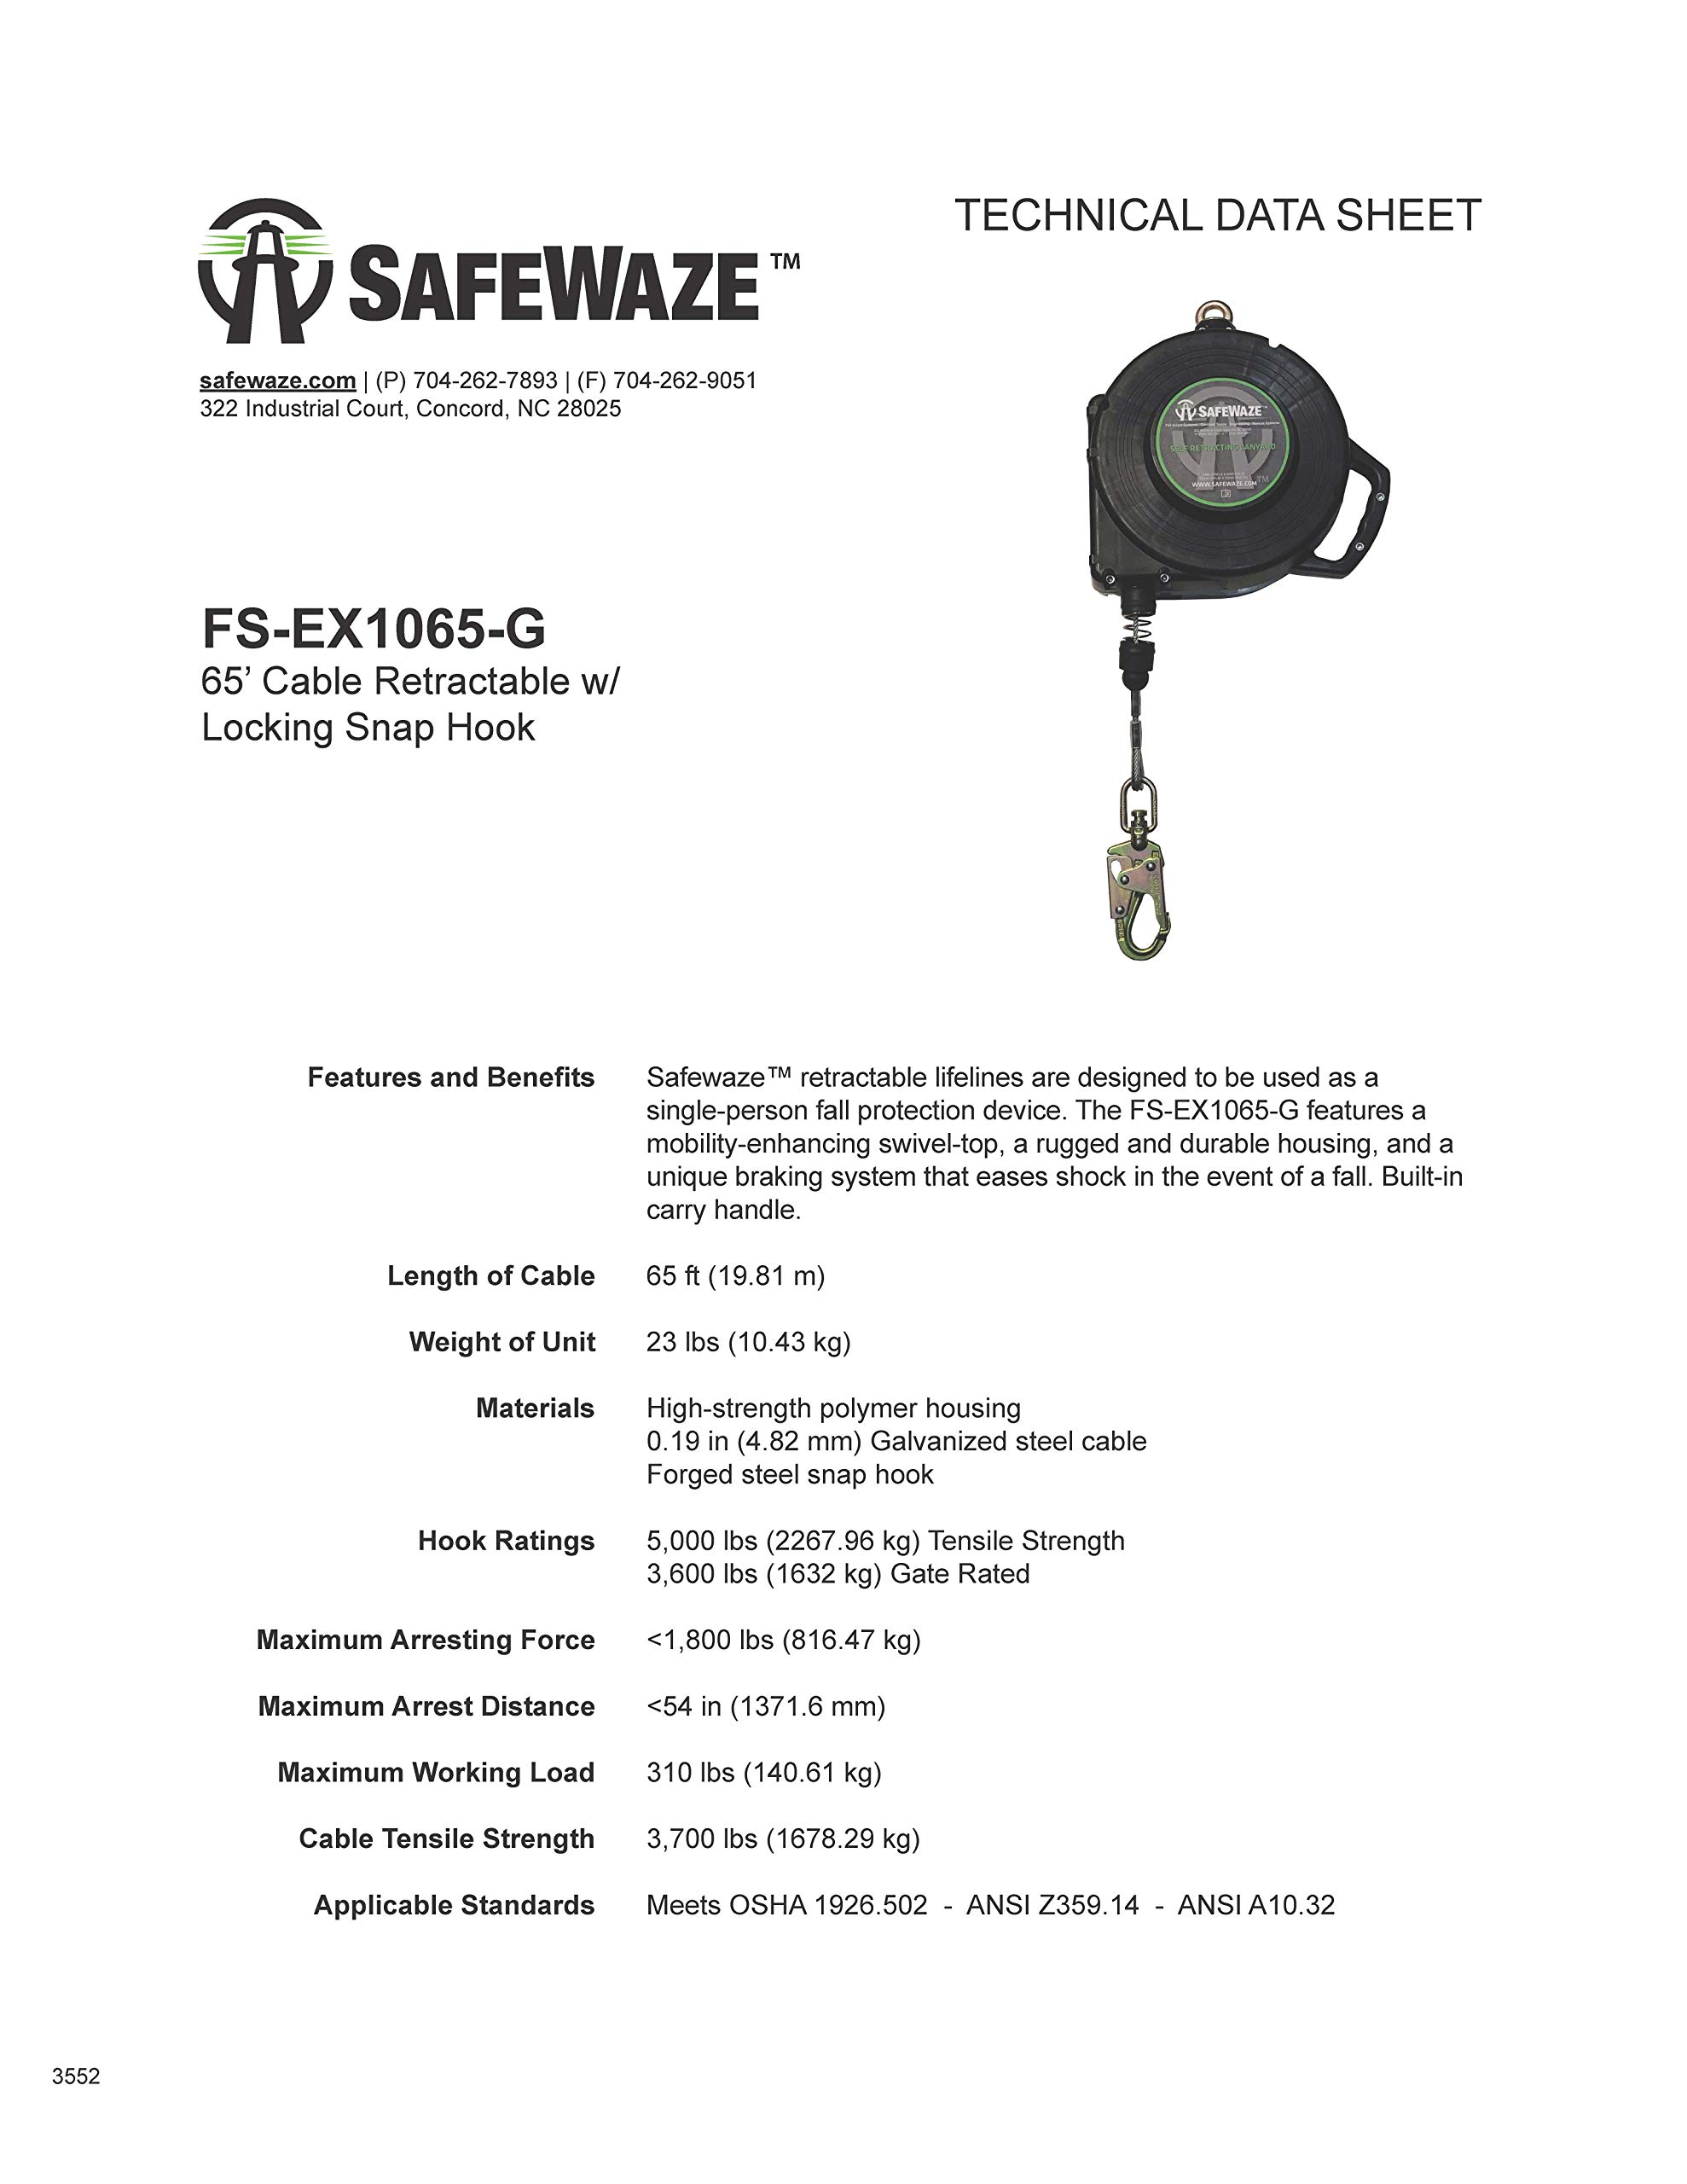 SafeWaze 65' Cable Retractable Lifeline with Locking Snap Hook, Single Person Fall Protection Device, OSHA/ANSI Compliant (FS-EX1065-G) by SafeWaze (Image #3)